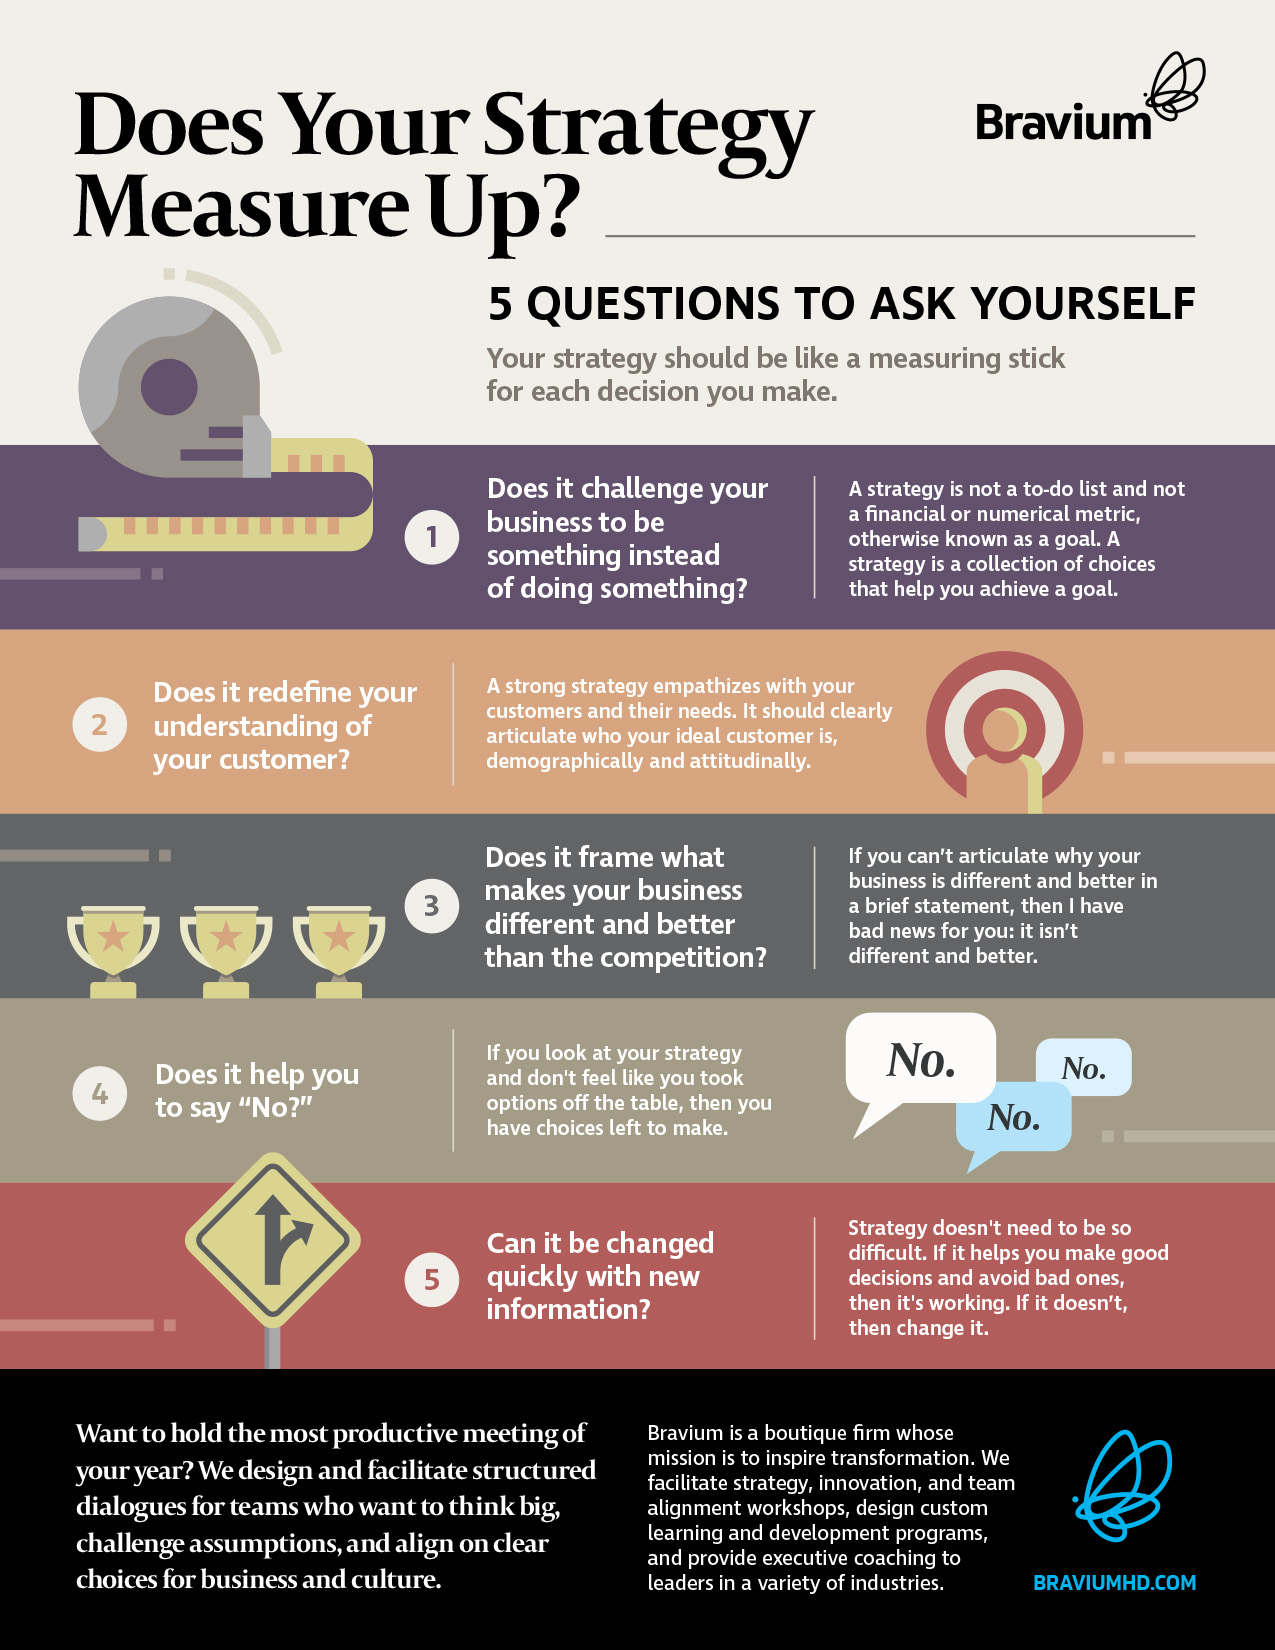 How-to-measure-effectiveness-of-strategy-infographic-Bravium-Jeff-Shannon.jpg